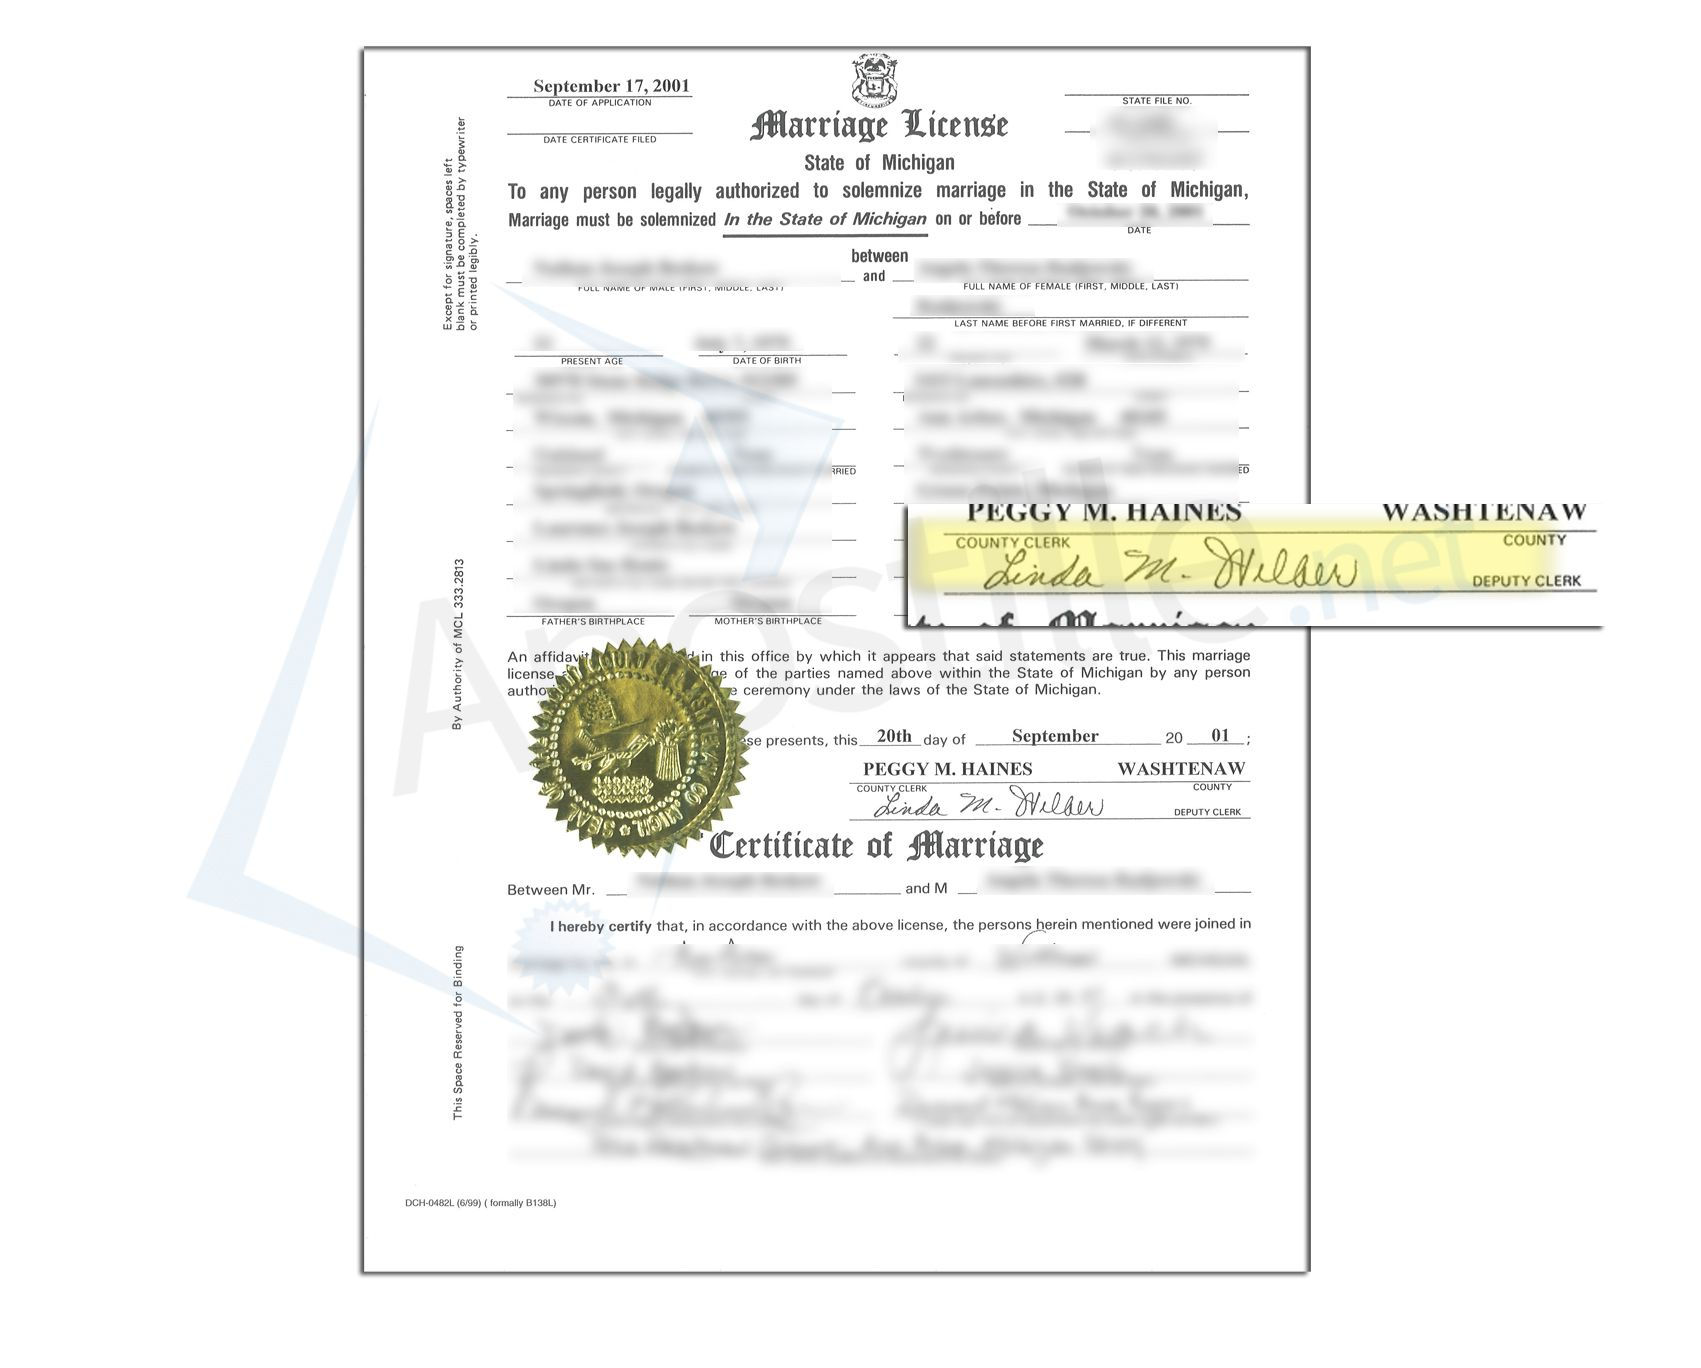 County of Washtenaw State of Michigan Marriage License